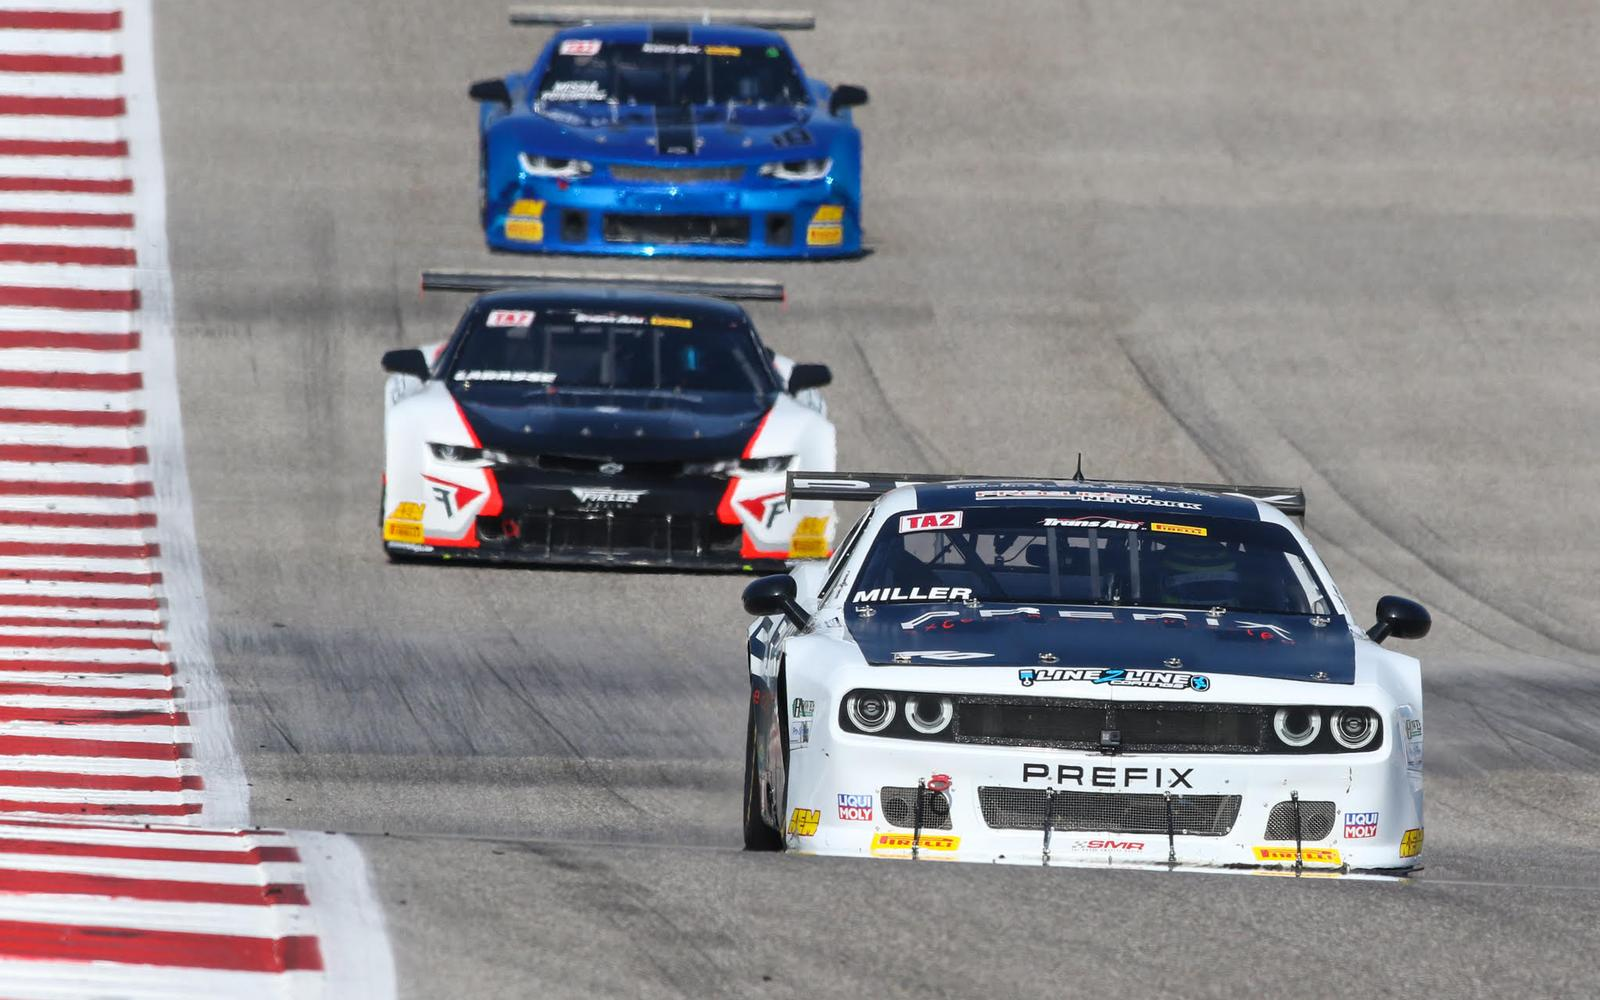 Trans Am News Flash: Marc Miller Wins Race and TA2 Championship at CoTA